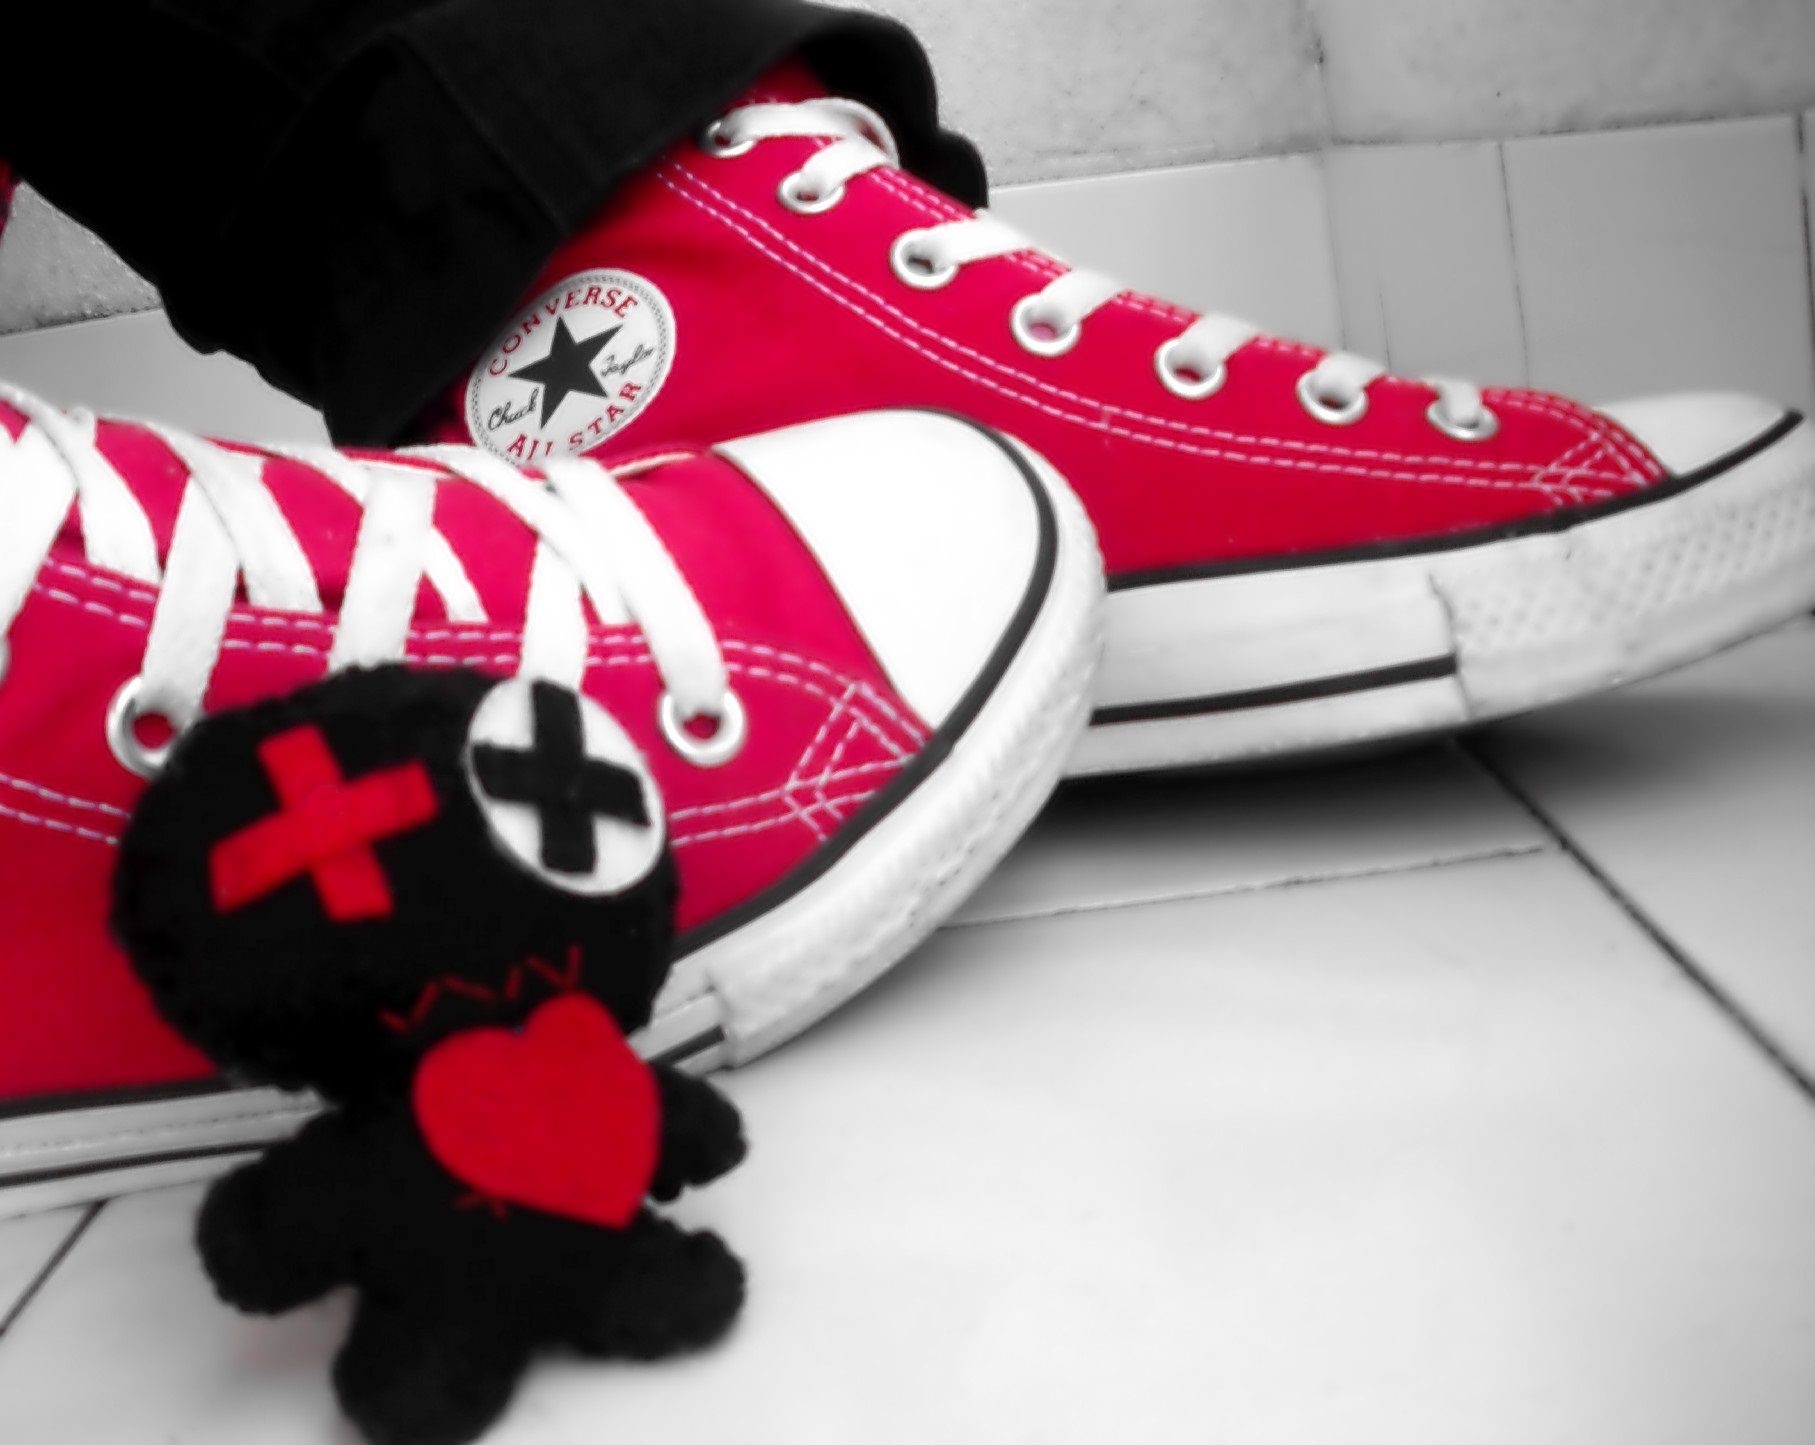 Hd wallpaper emo - Pink Emo Converse Shoes Wallpaper From Emo Wallpapers